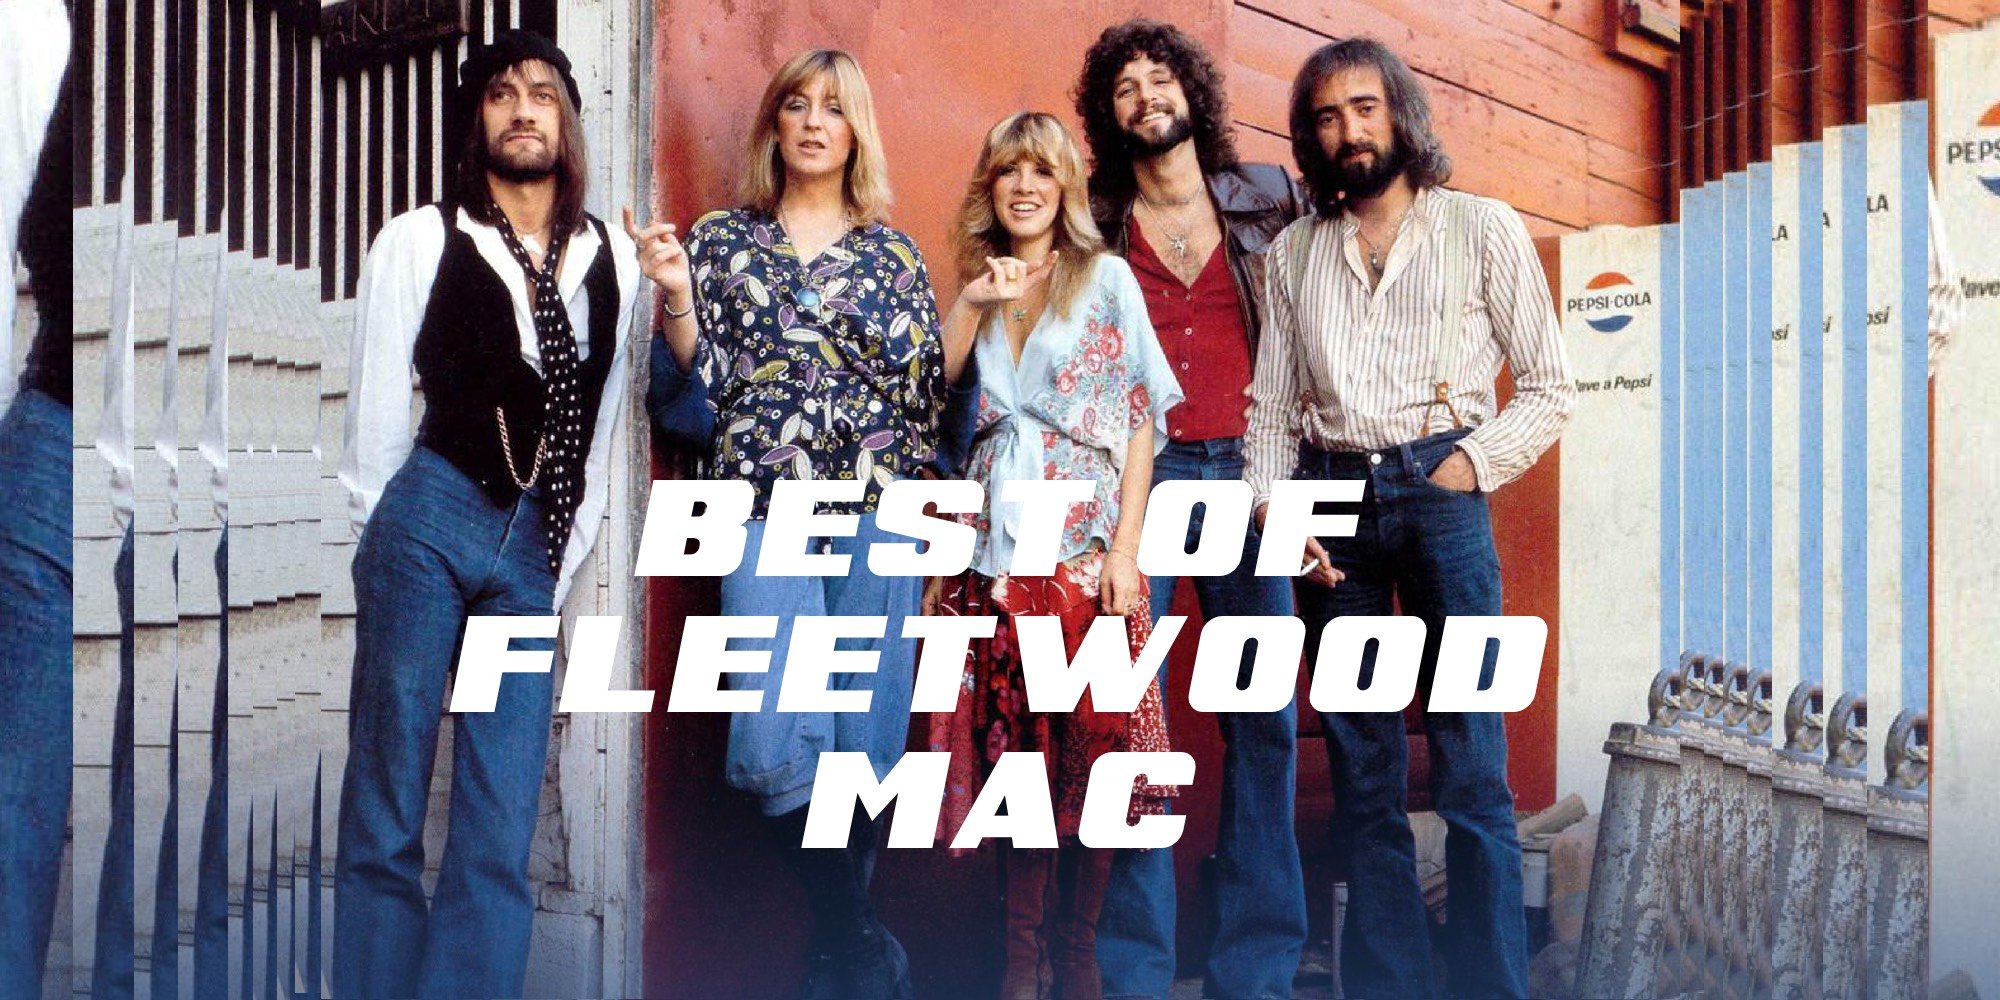 Best Of Fleetwood Mac Tab Collections Ultimate Guitar